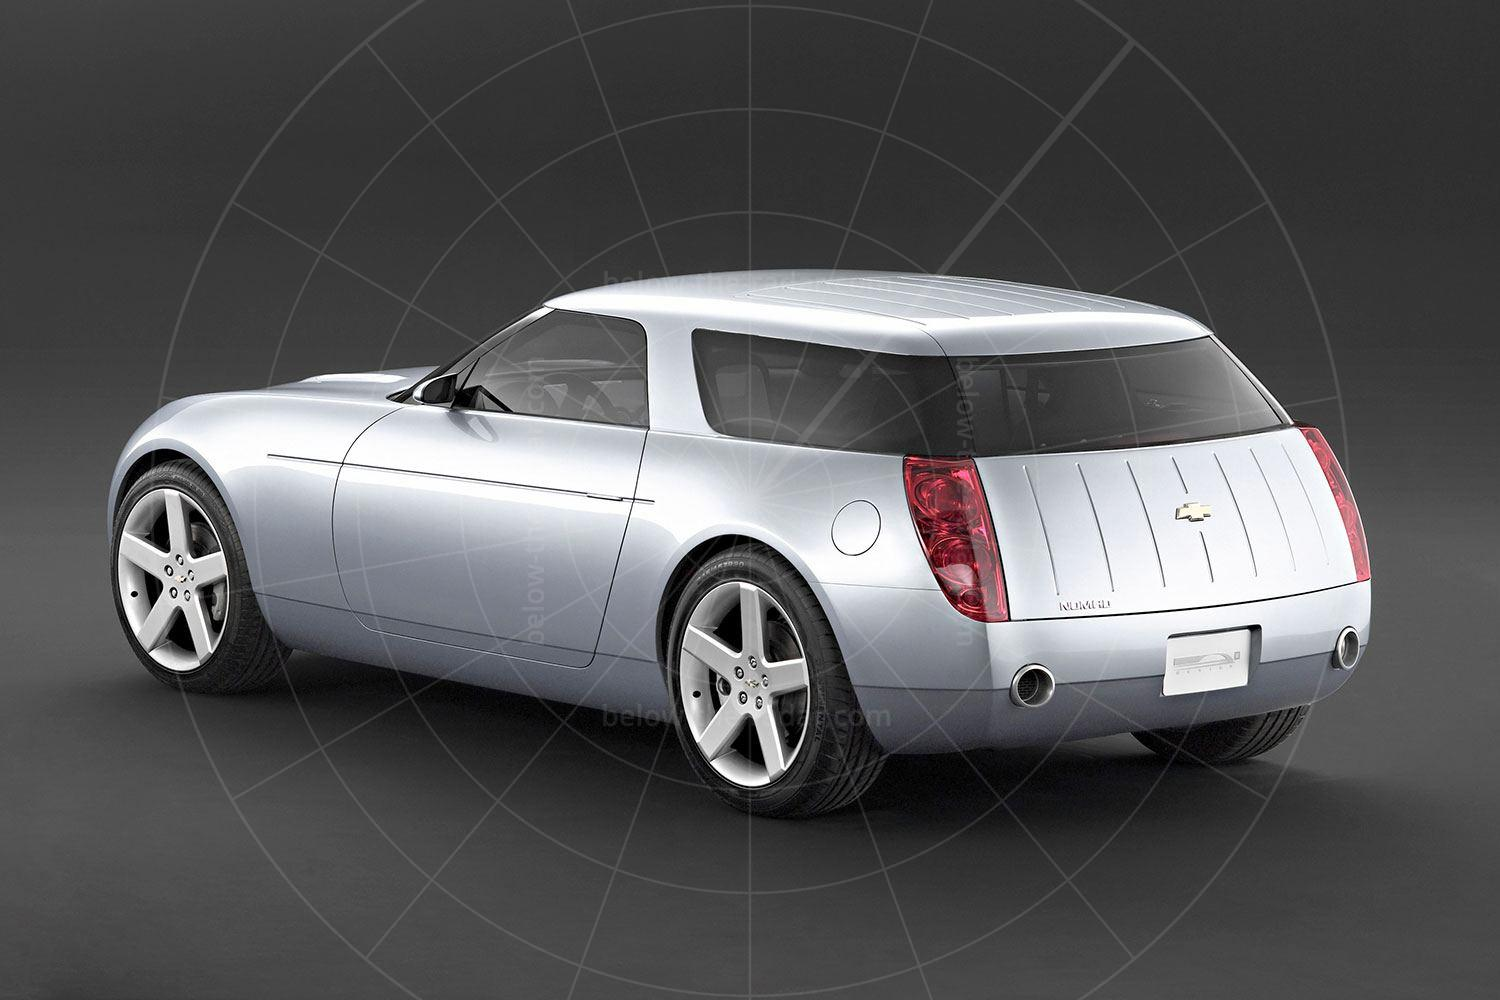 The 2004 Chevrolet Nomad concept